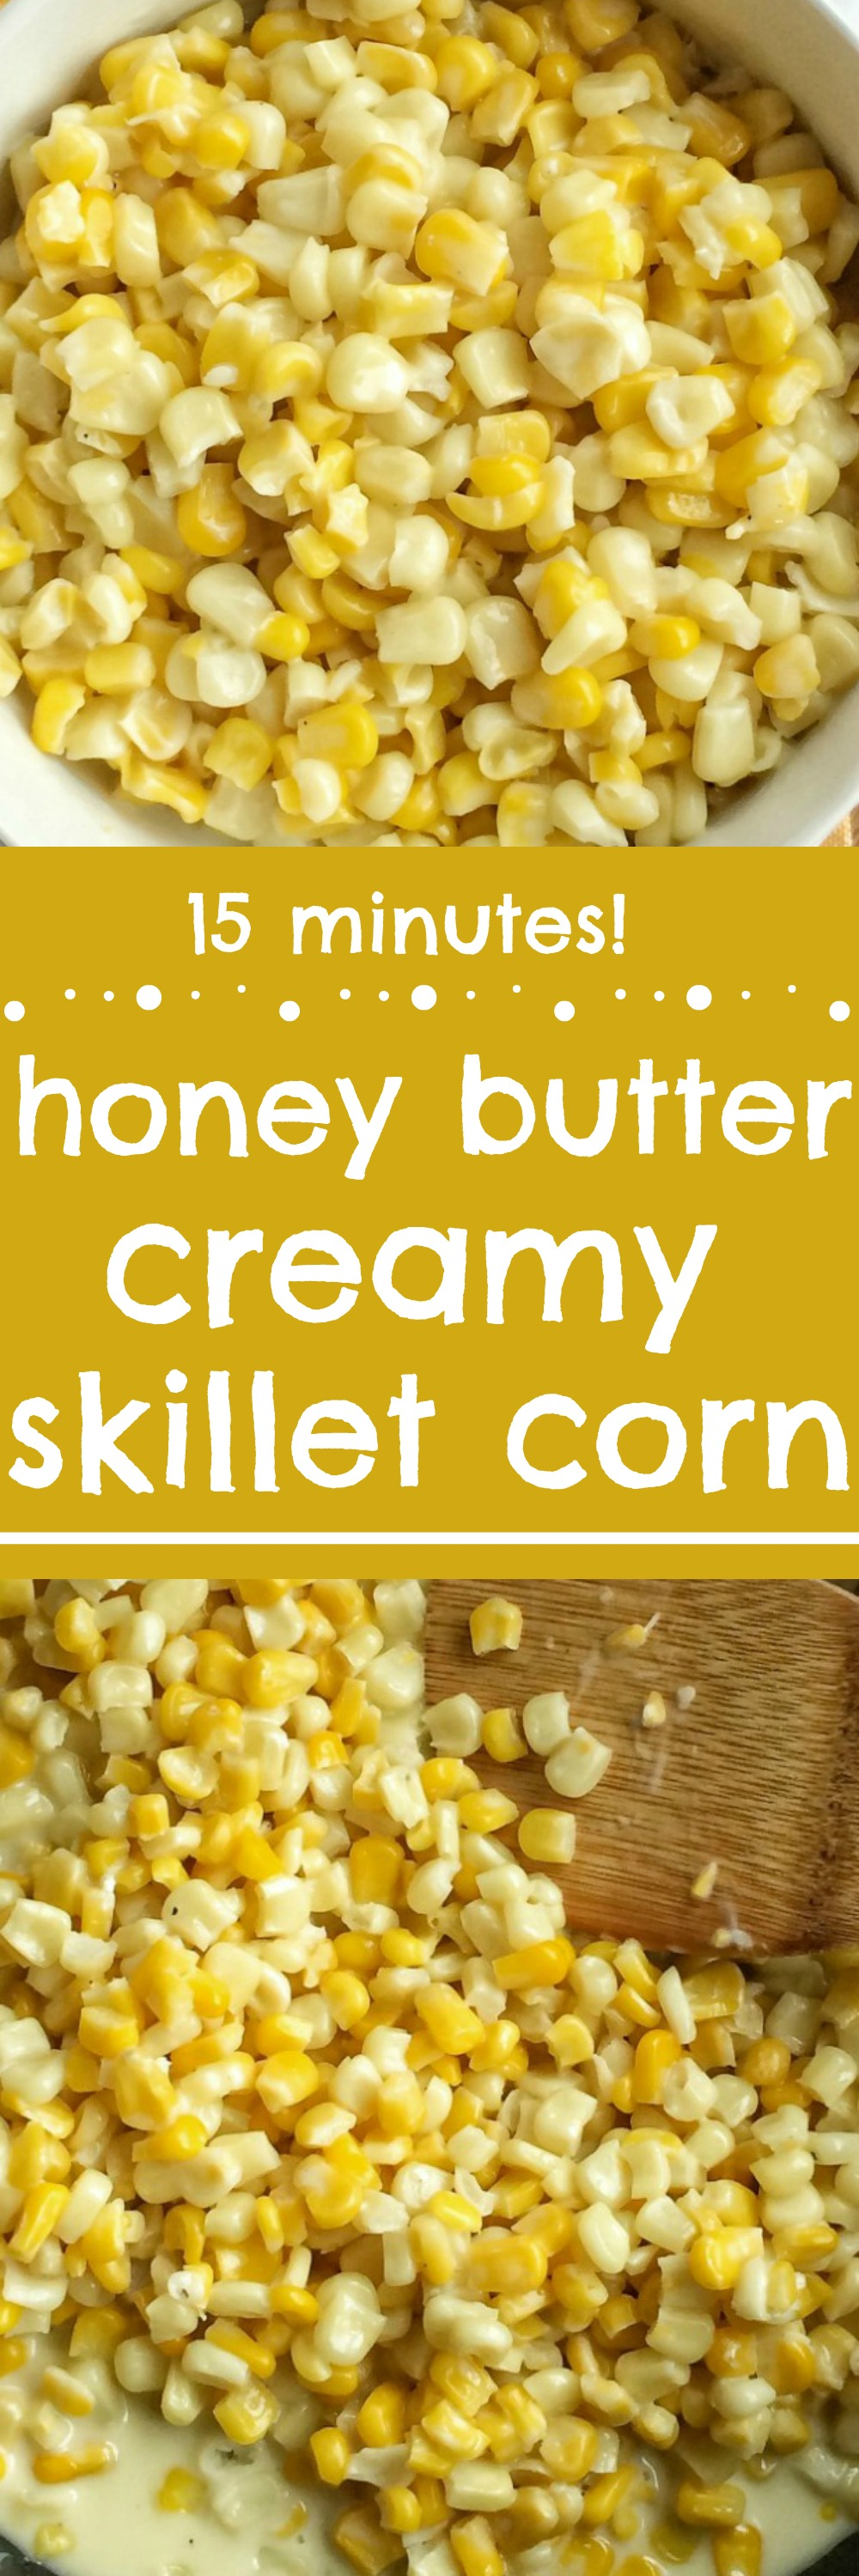 Honey Butter Creamy Skillet Corn - Together as Family